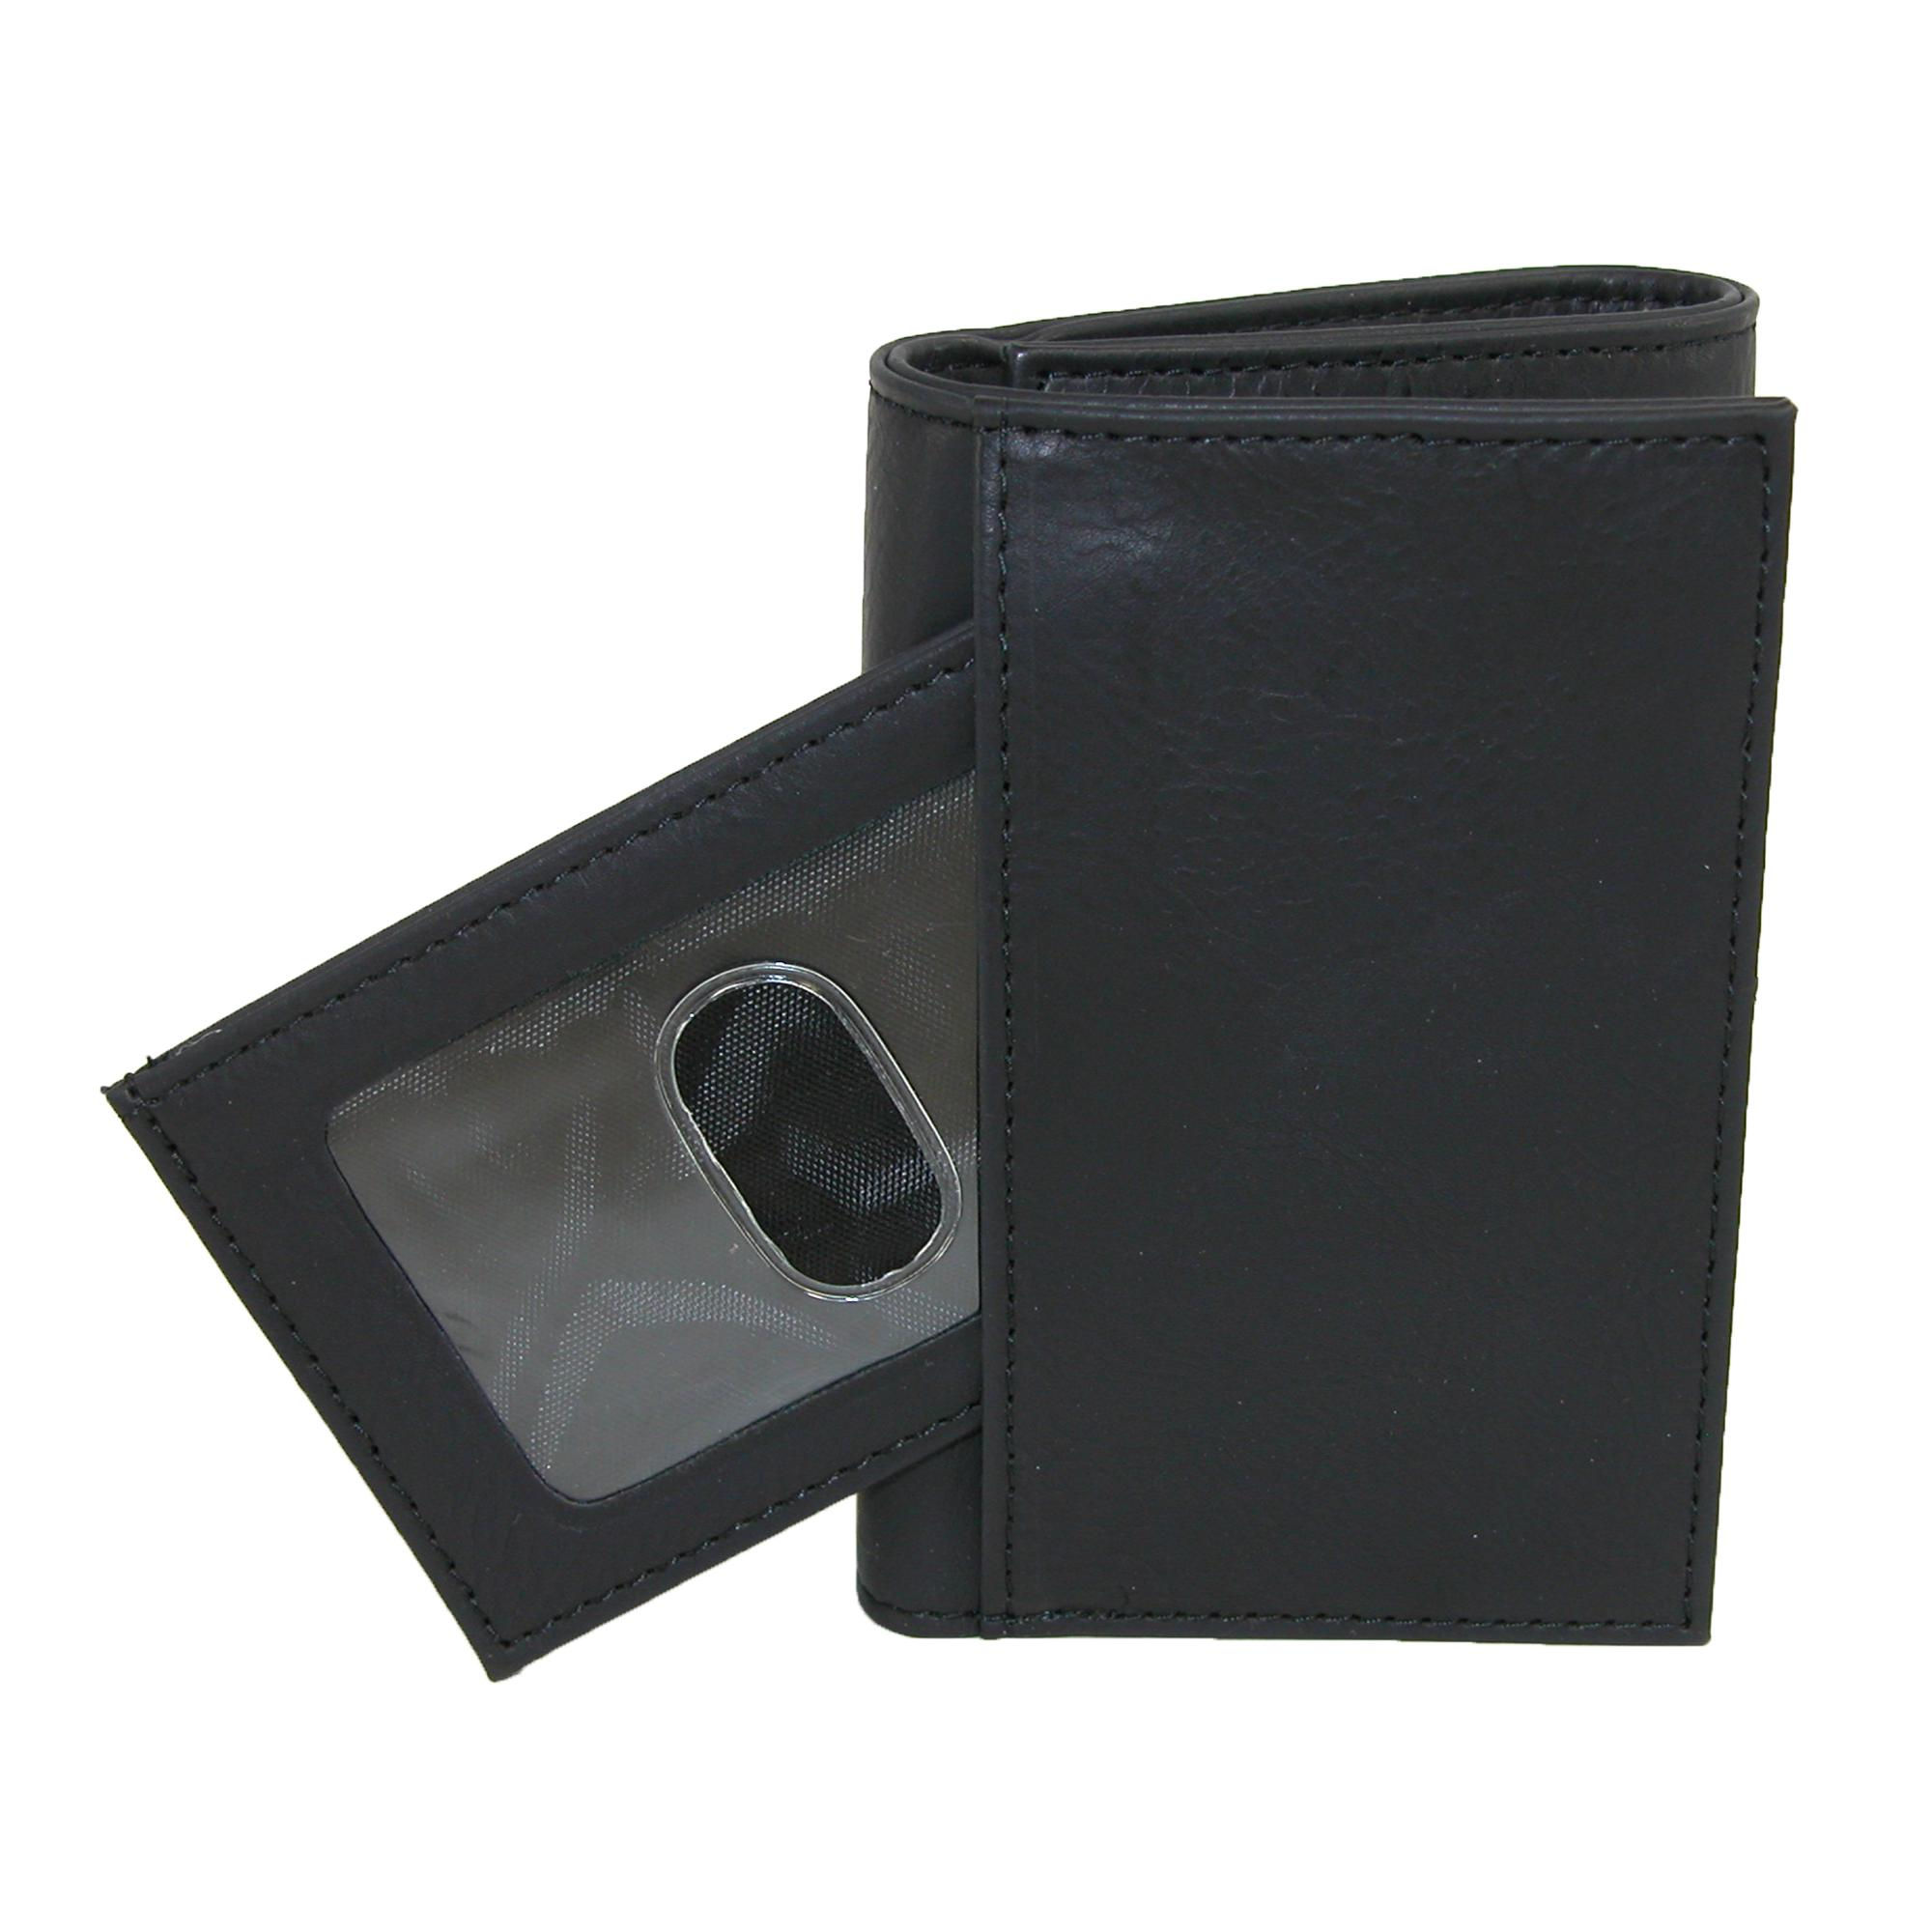 New Buxton Men/'s Leather RFID ID Trifold Travel Wallet